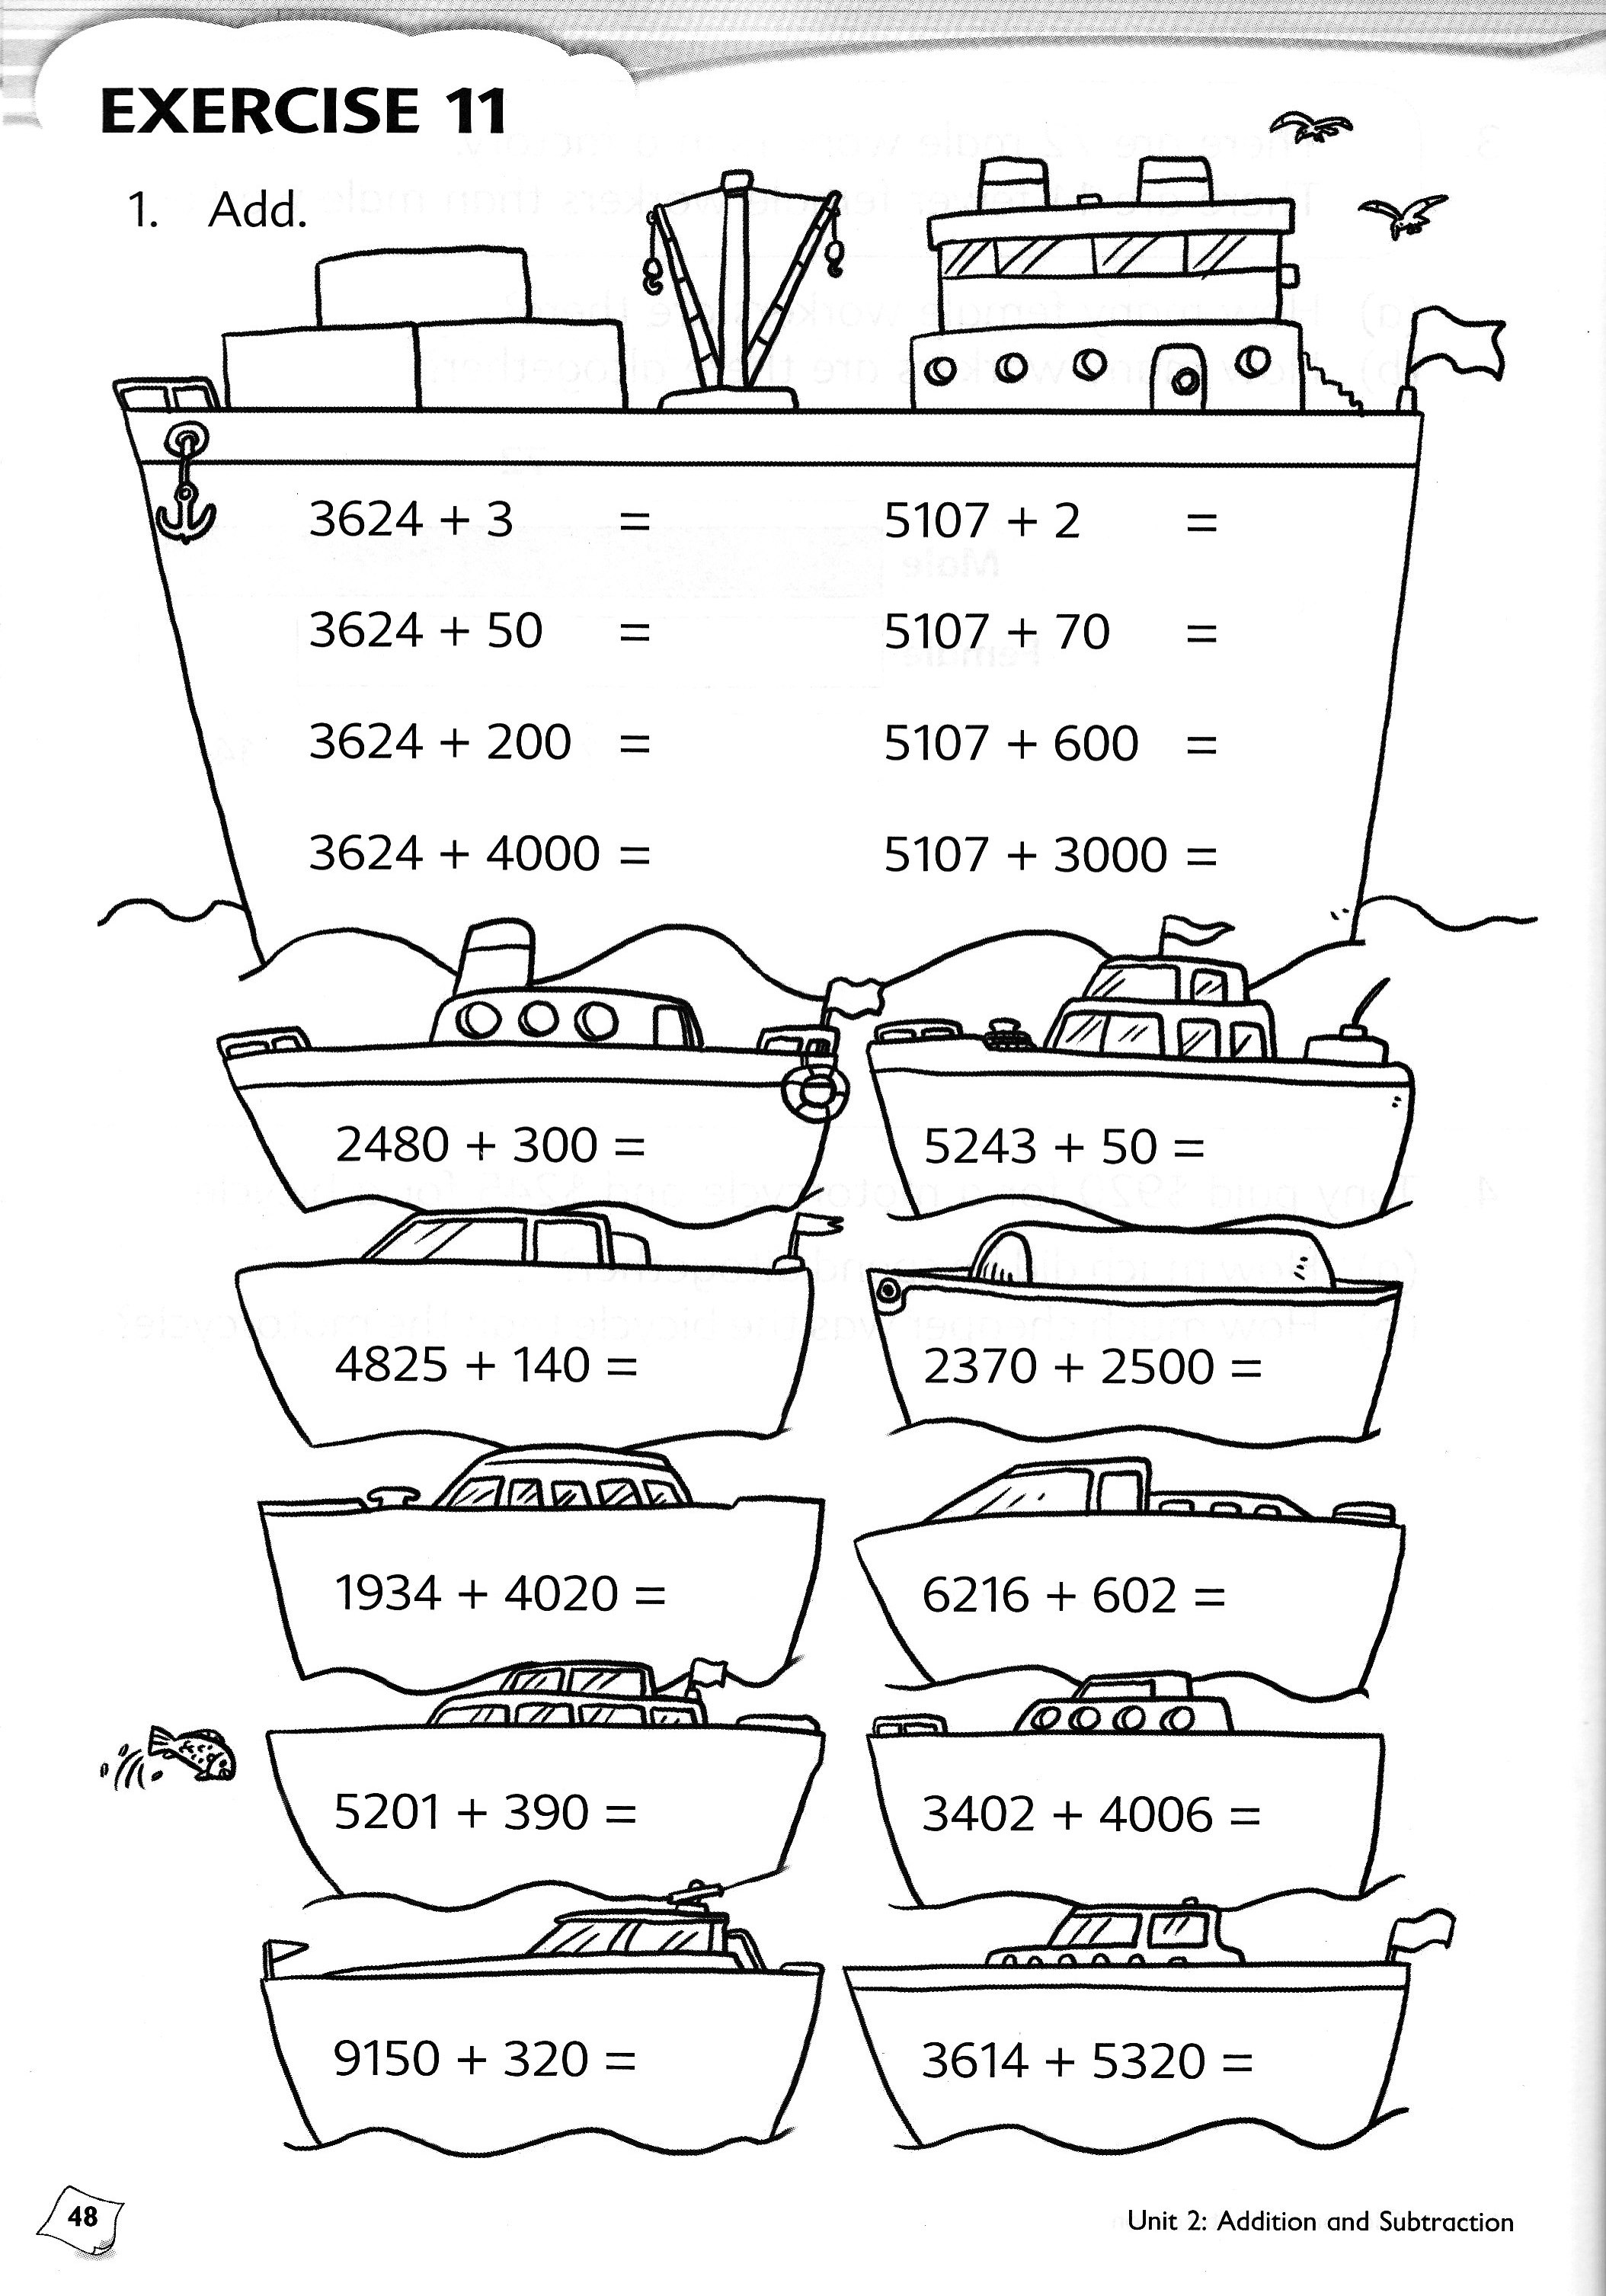 Primary 1 Maths Worksheets Free Singapore math worksheets for – Maths Worksheets for Primary 3